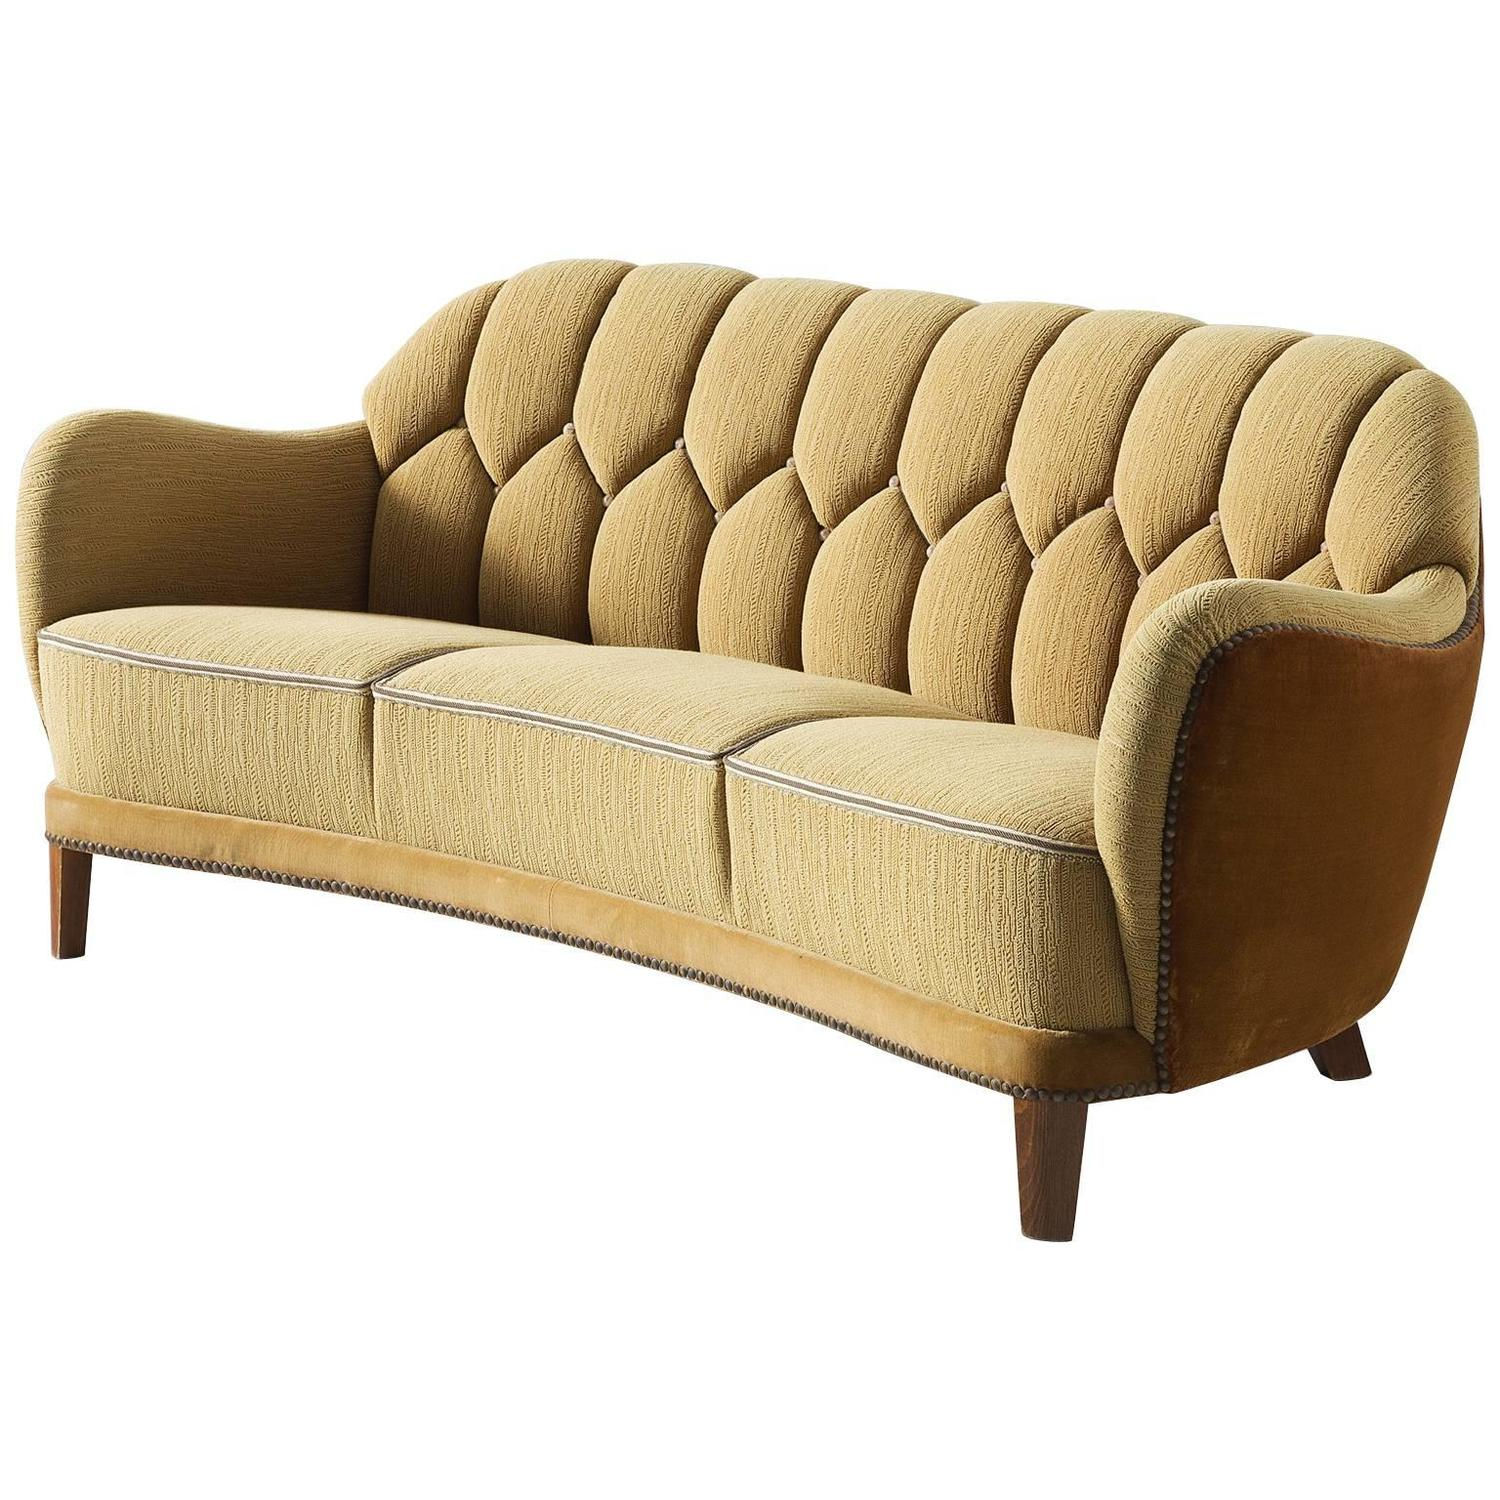 Danish Curved Sofa In Yellow And Brown Velours For Sale At